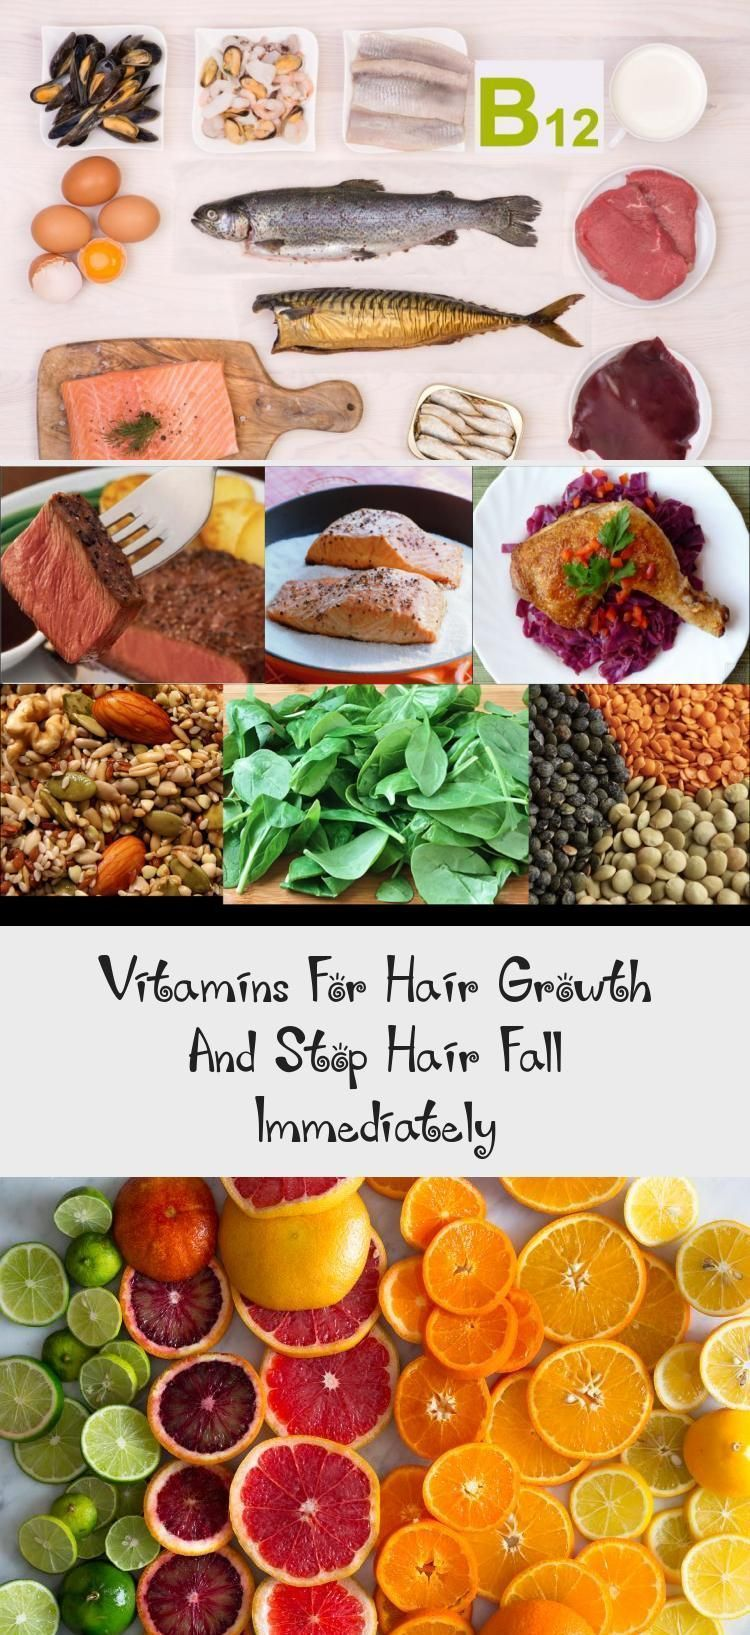 Vitamins For Hair Growth And Stop Hair Fall Immediately -  Vitamins-for-hair-growth-and-stop-hair-fall-immediately-Shopno-Dana Vitamins for hair growth-Shopnodana… #hair #hairfall #regrowthhair #ha  - #castoroilforHairGrowth #HairGrowth #HairGrowthafricanamerican #HairGrowthbeforeandafter #HairGrowthchart #HairGrowthdiy #HairGrowthfaster #HairGrowthinaweek #HairGrowthmask #HairGrowthonion #HairGrowthproducts #HairGrowthshampoo #HairGrowthsuperfast #HairGrowththicker #HairGrowthtips #HairGrowth